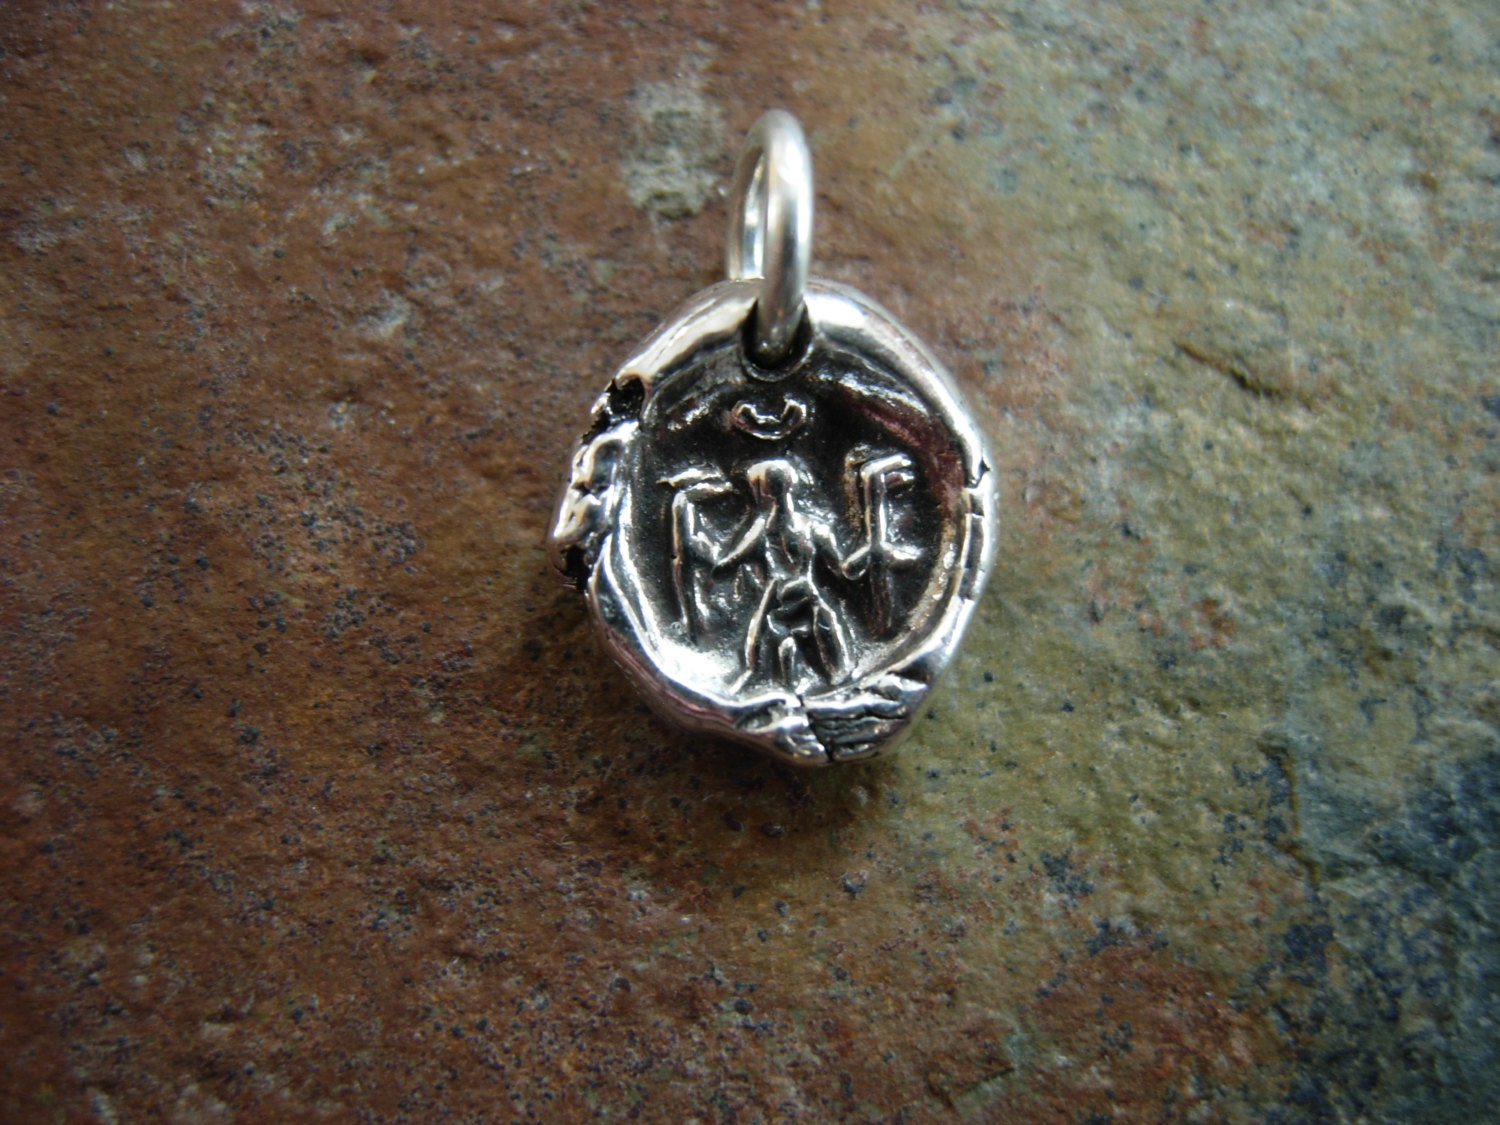 mixmage of witch hecate magic flickr jewelry mind devotional silver world medallion photos and tags hive b occult the best goddess jewellery s pendant